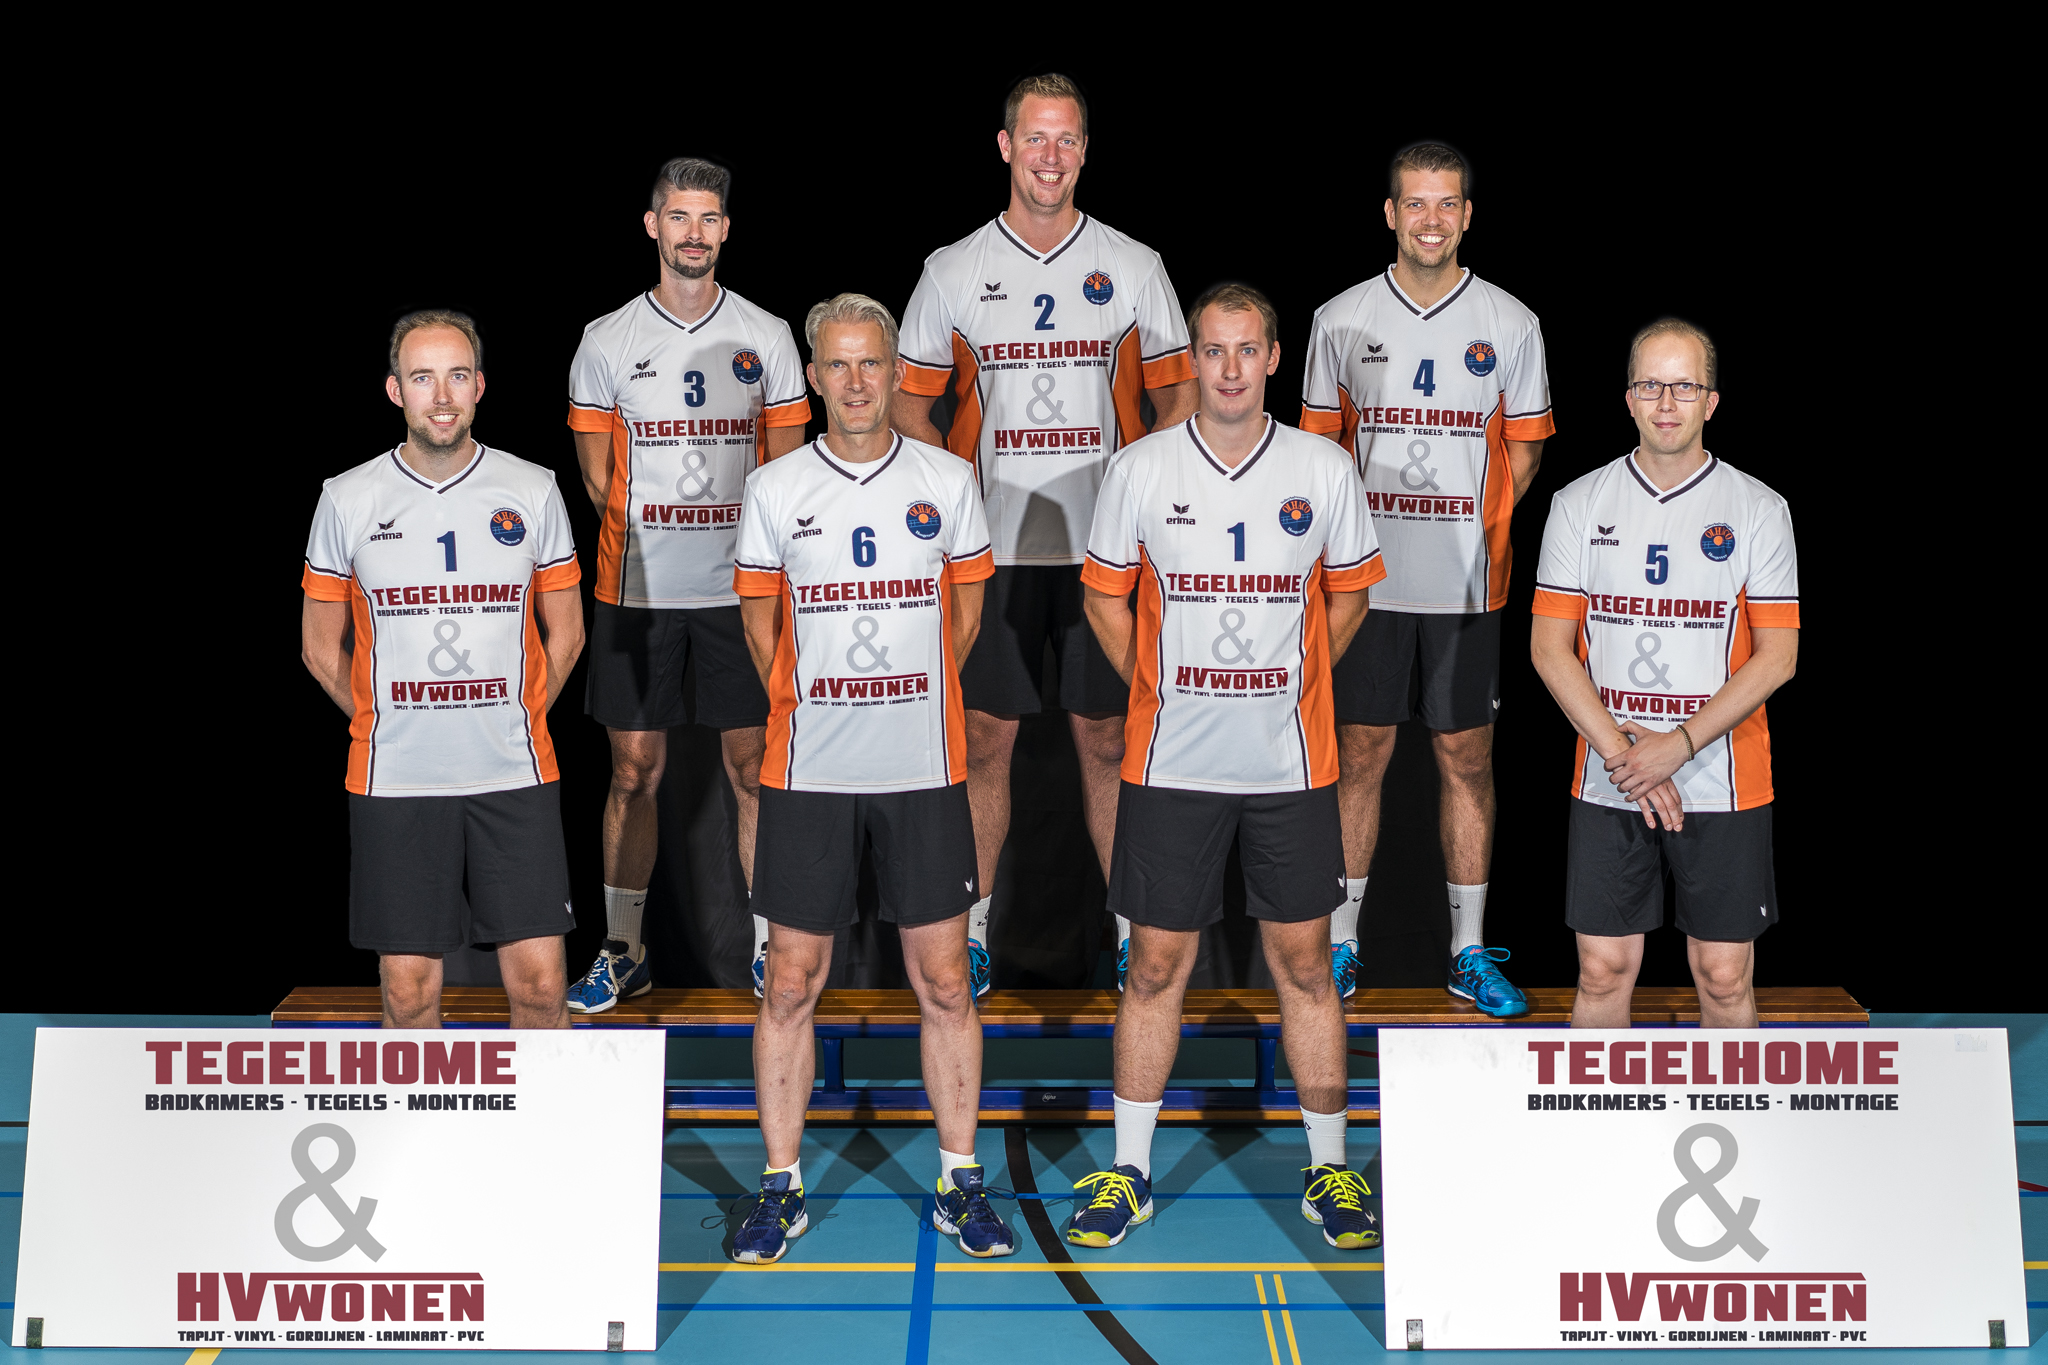 Recreanten Heren 4